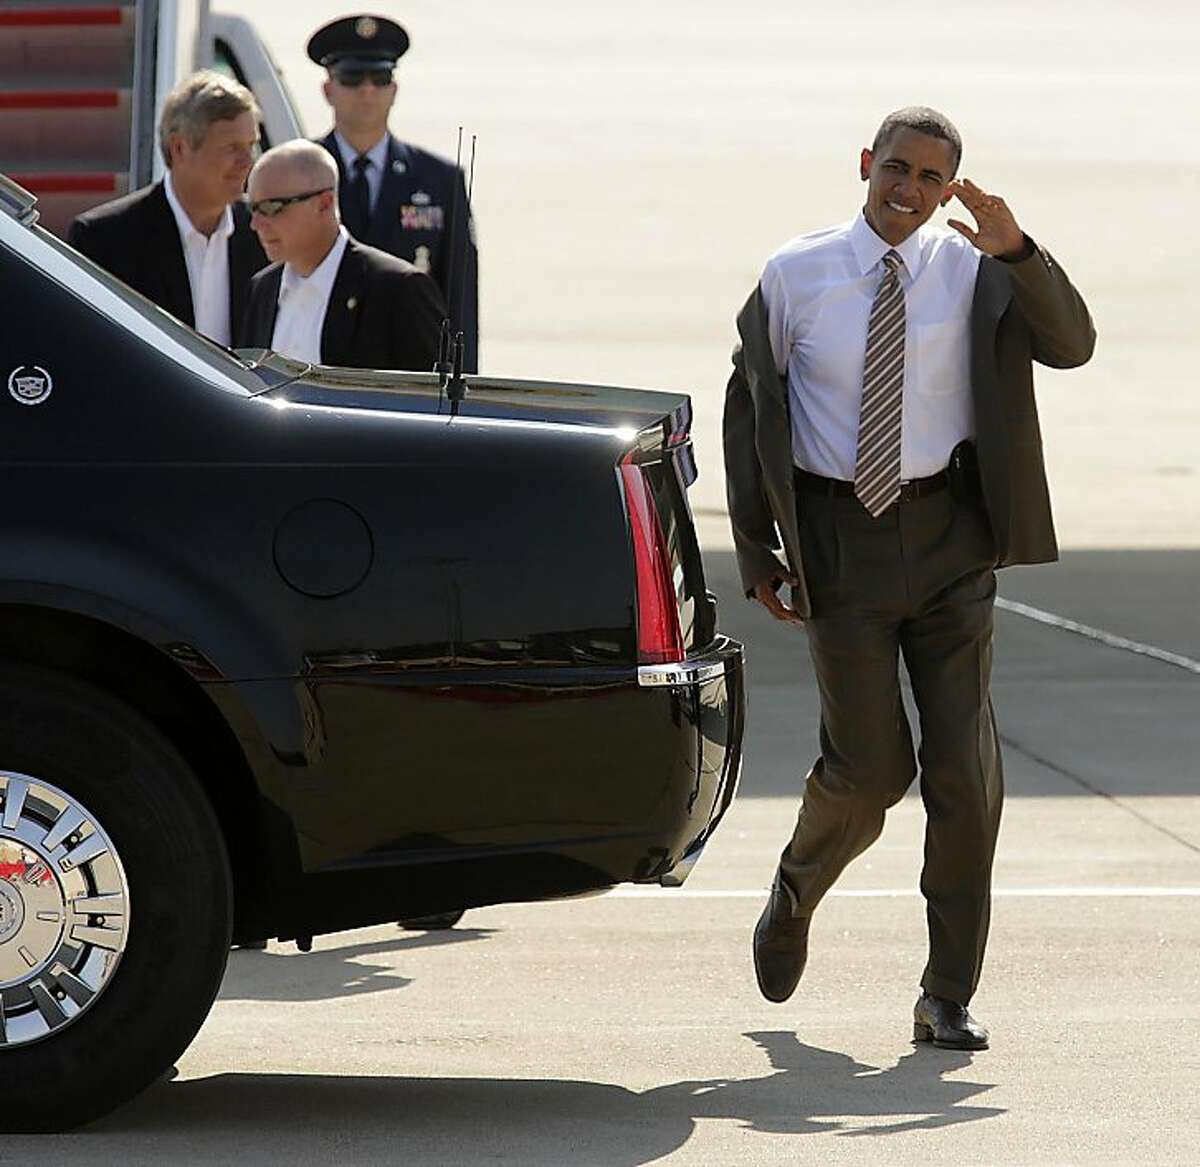 President Barack Obama shrugs his coat off as he waves to supporters after arriving at the Sioux Gateway Airport in Sioux City, Iowa, Saturday, Sept. 1, 2012, to attend a rally at Morningside College in Sioux City. (AP Photo/Jerry Mennenga)